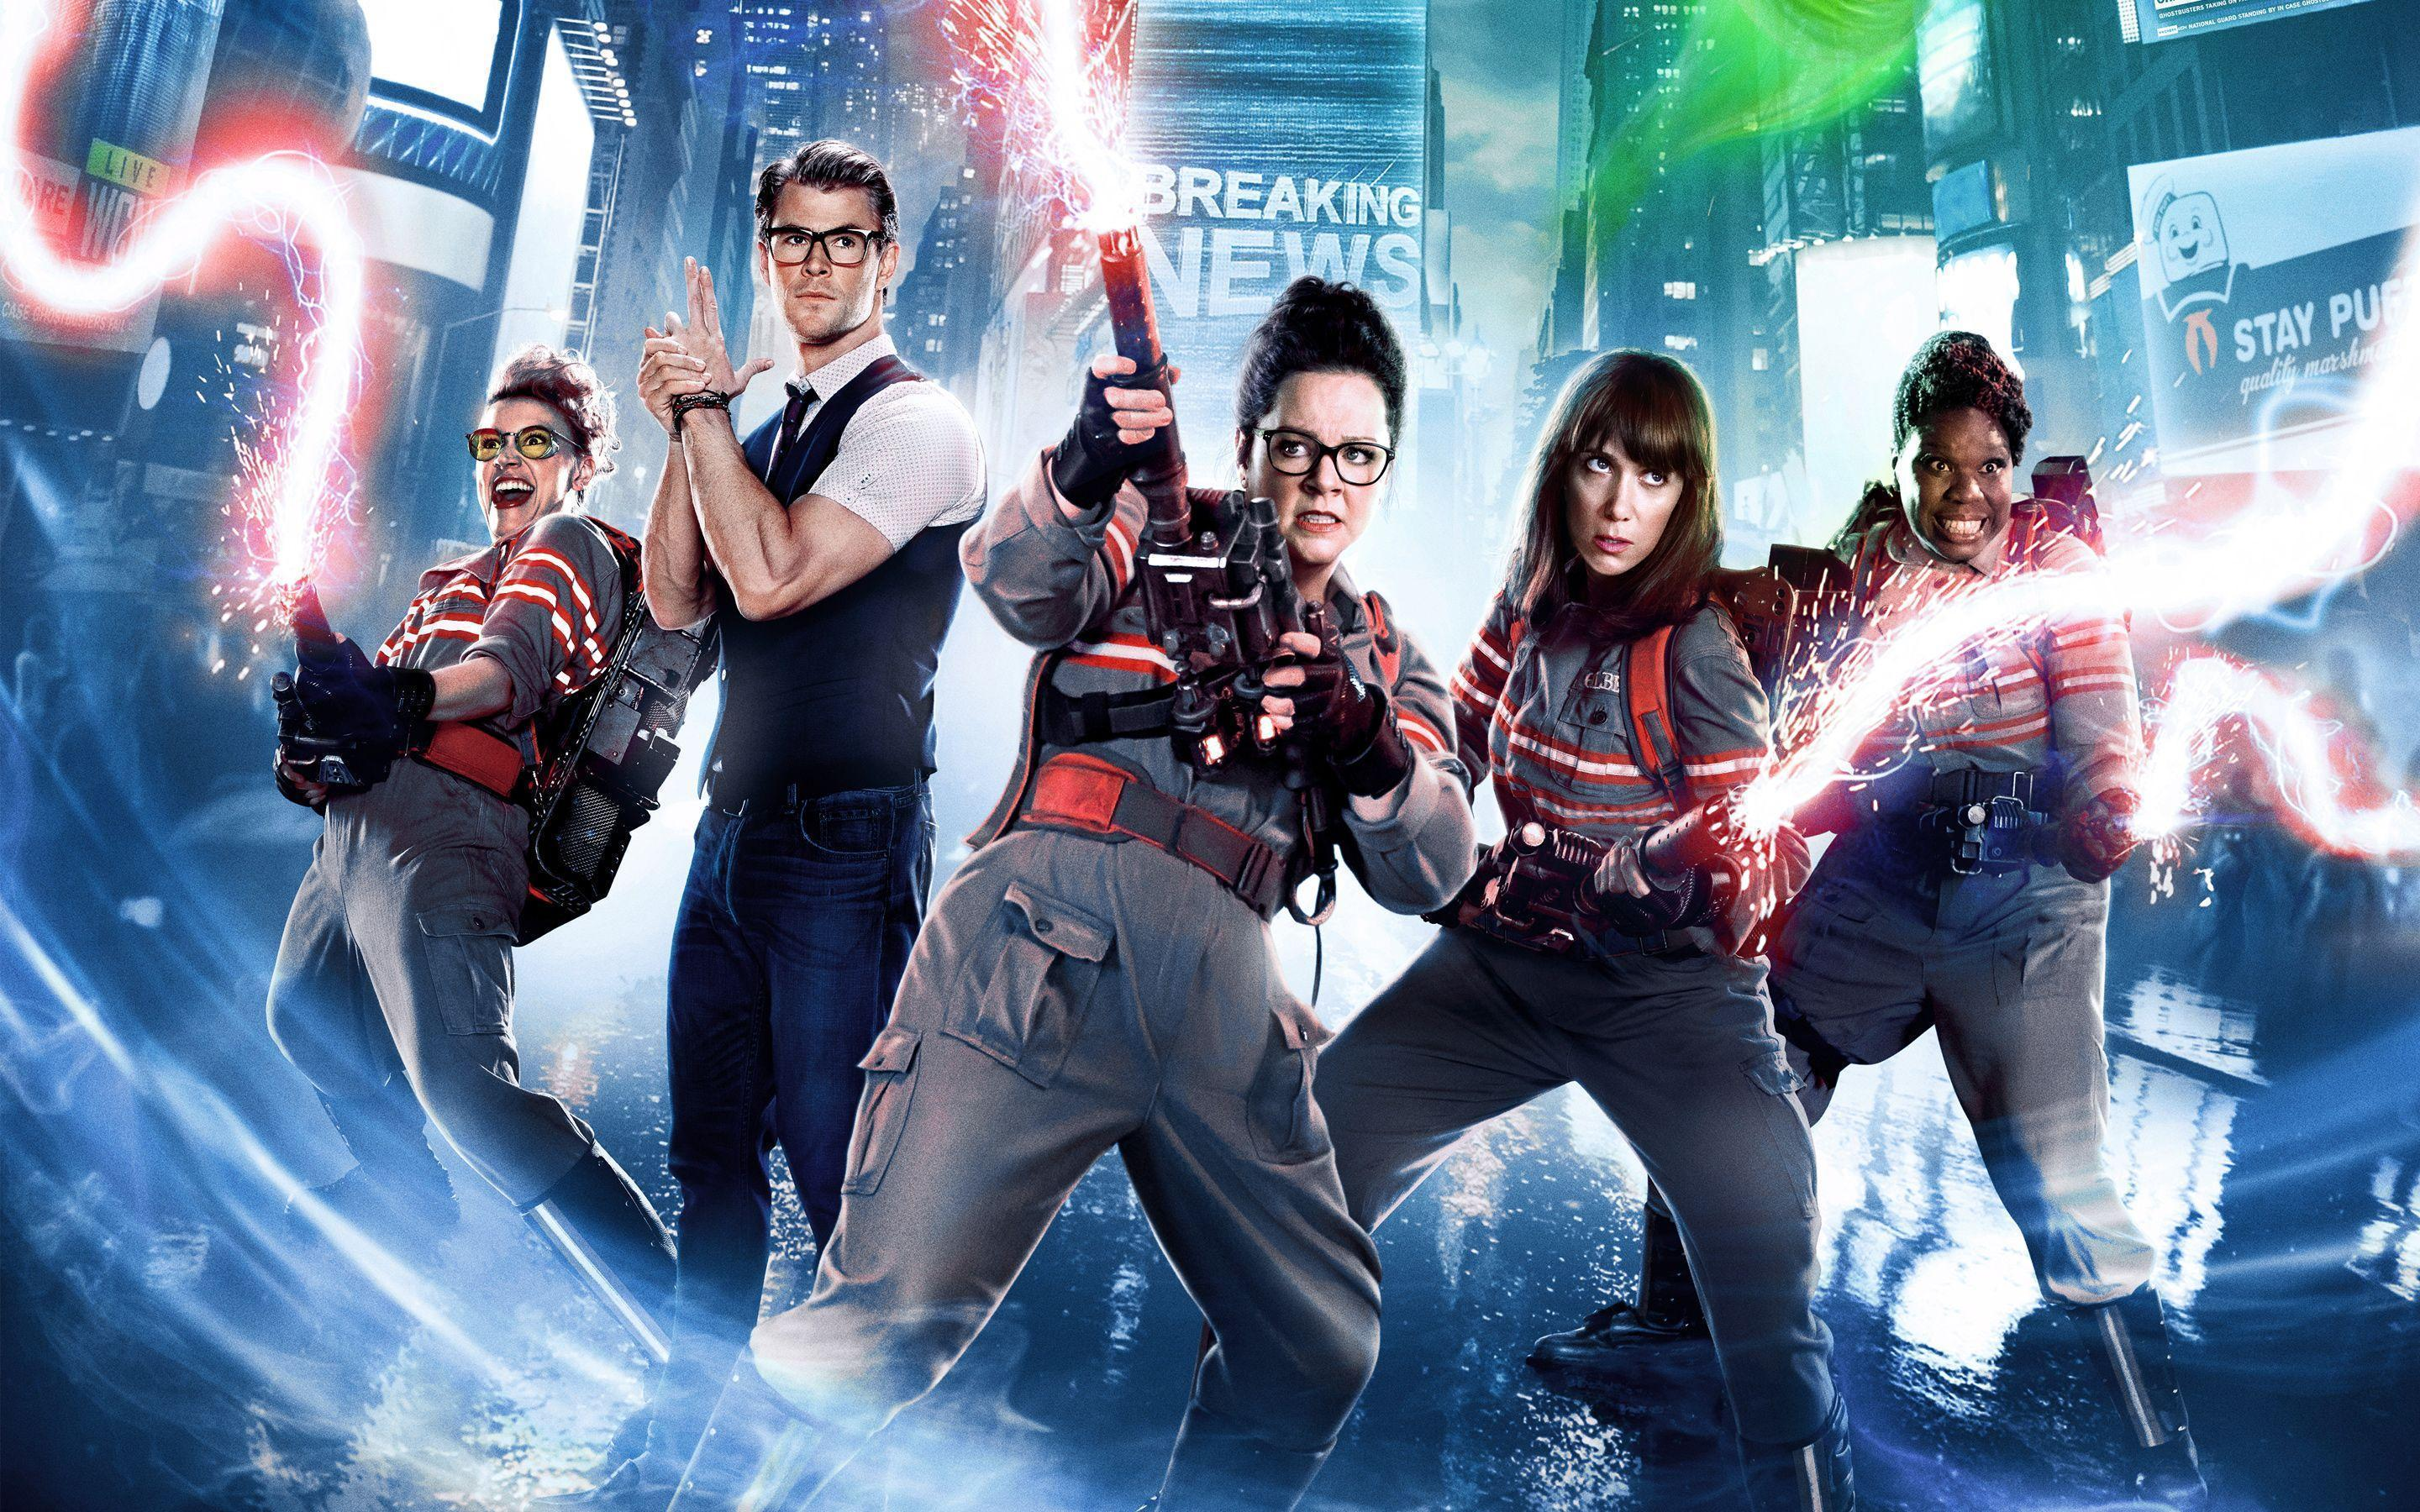 Ghostbusters 2016 Wallpapers - Wallpaper Cave